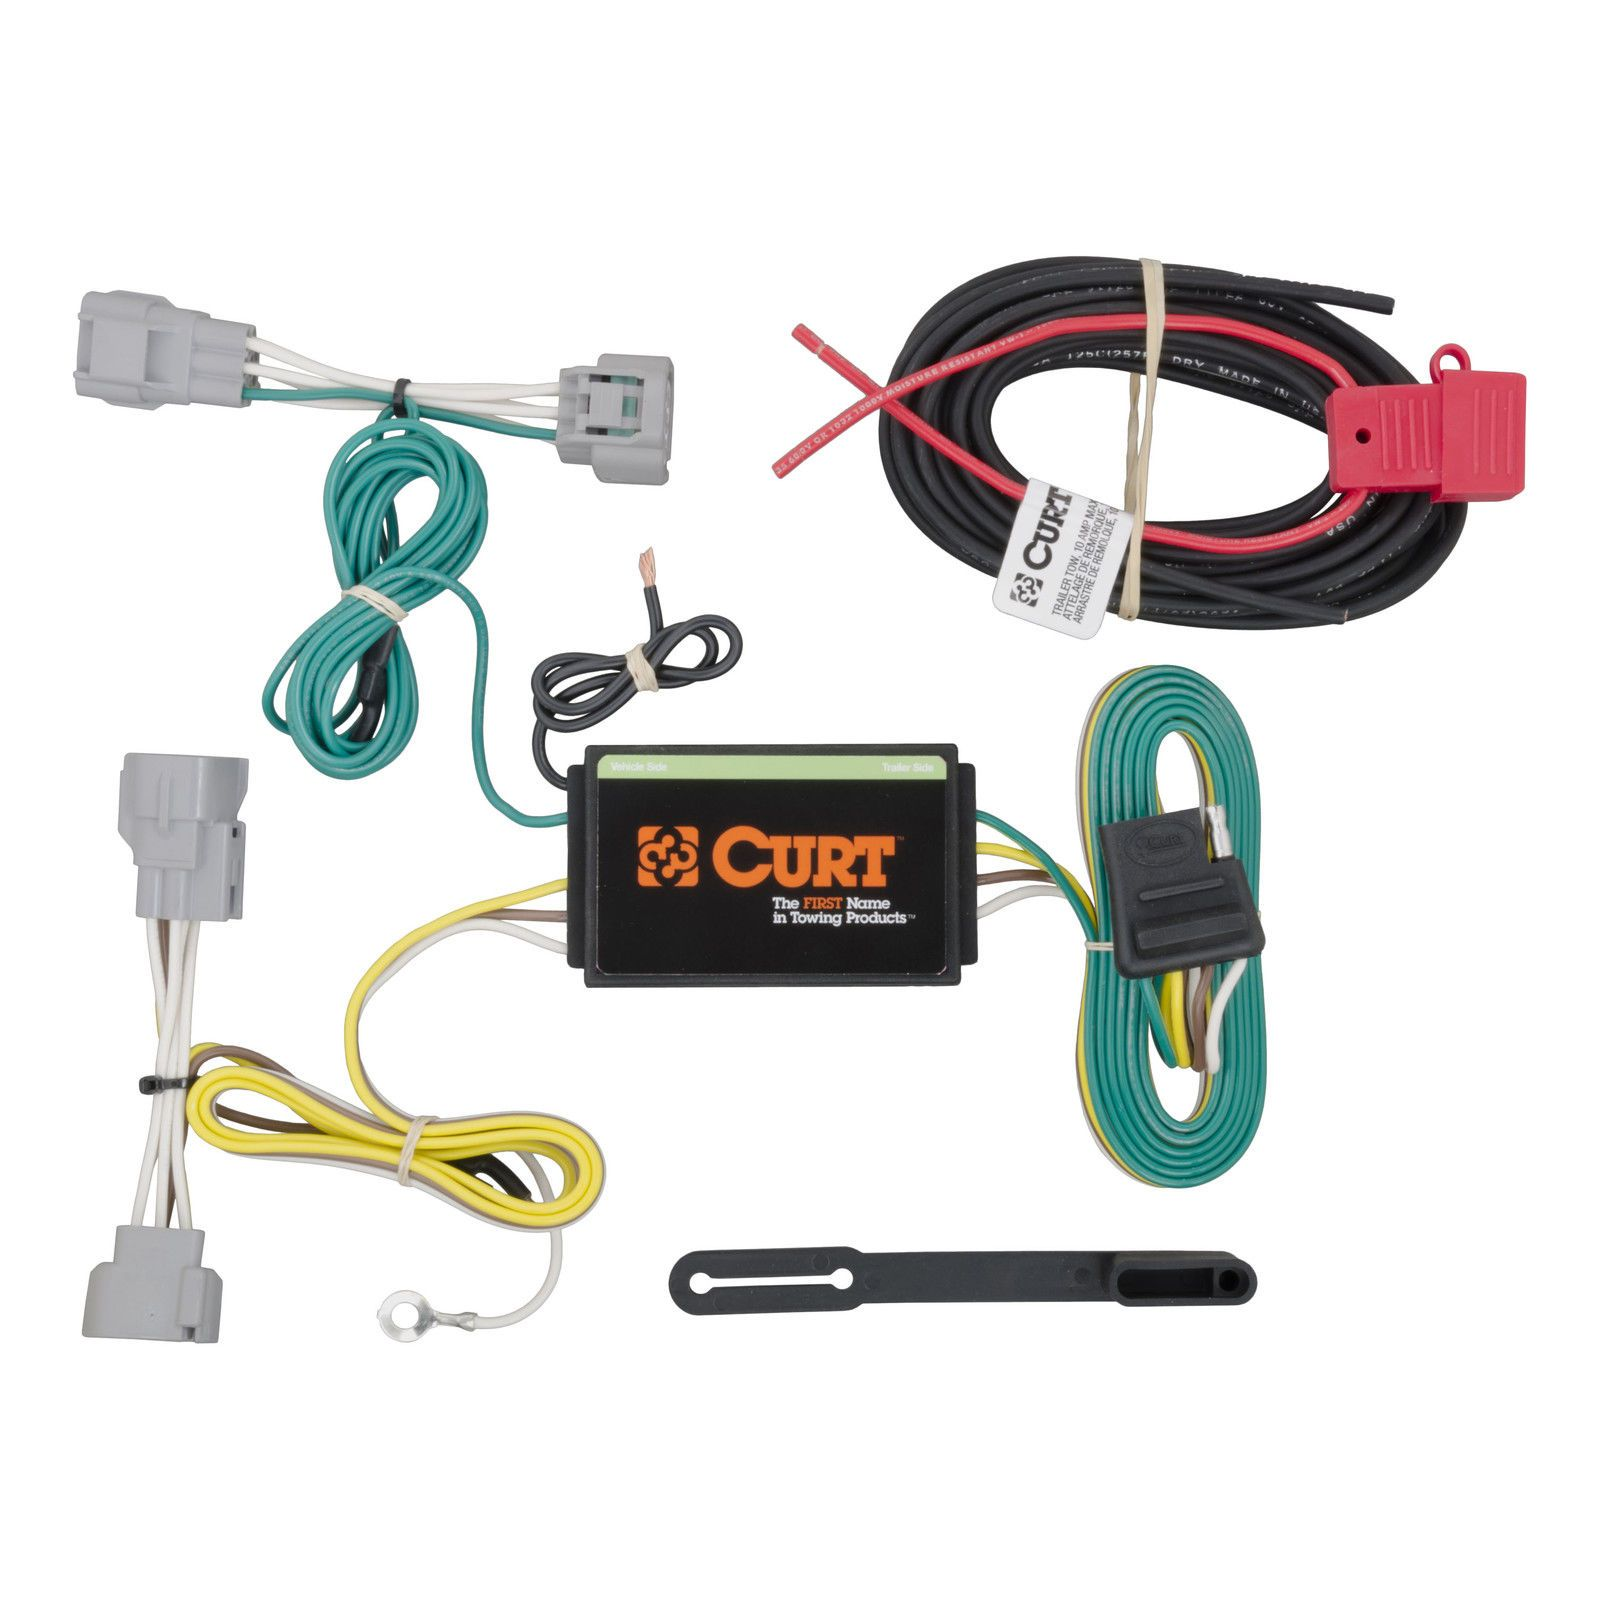 curt custom vehicle to trailer wiring harness 56208 for 2014 2016 jeep cherokee [ 1600 x 1600 Pixel ]